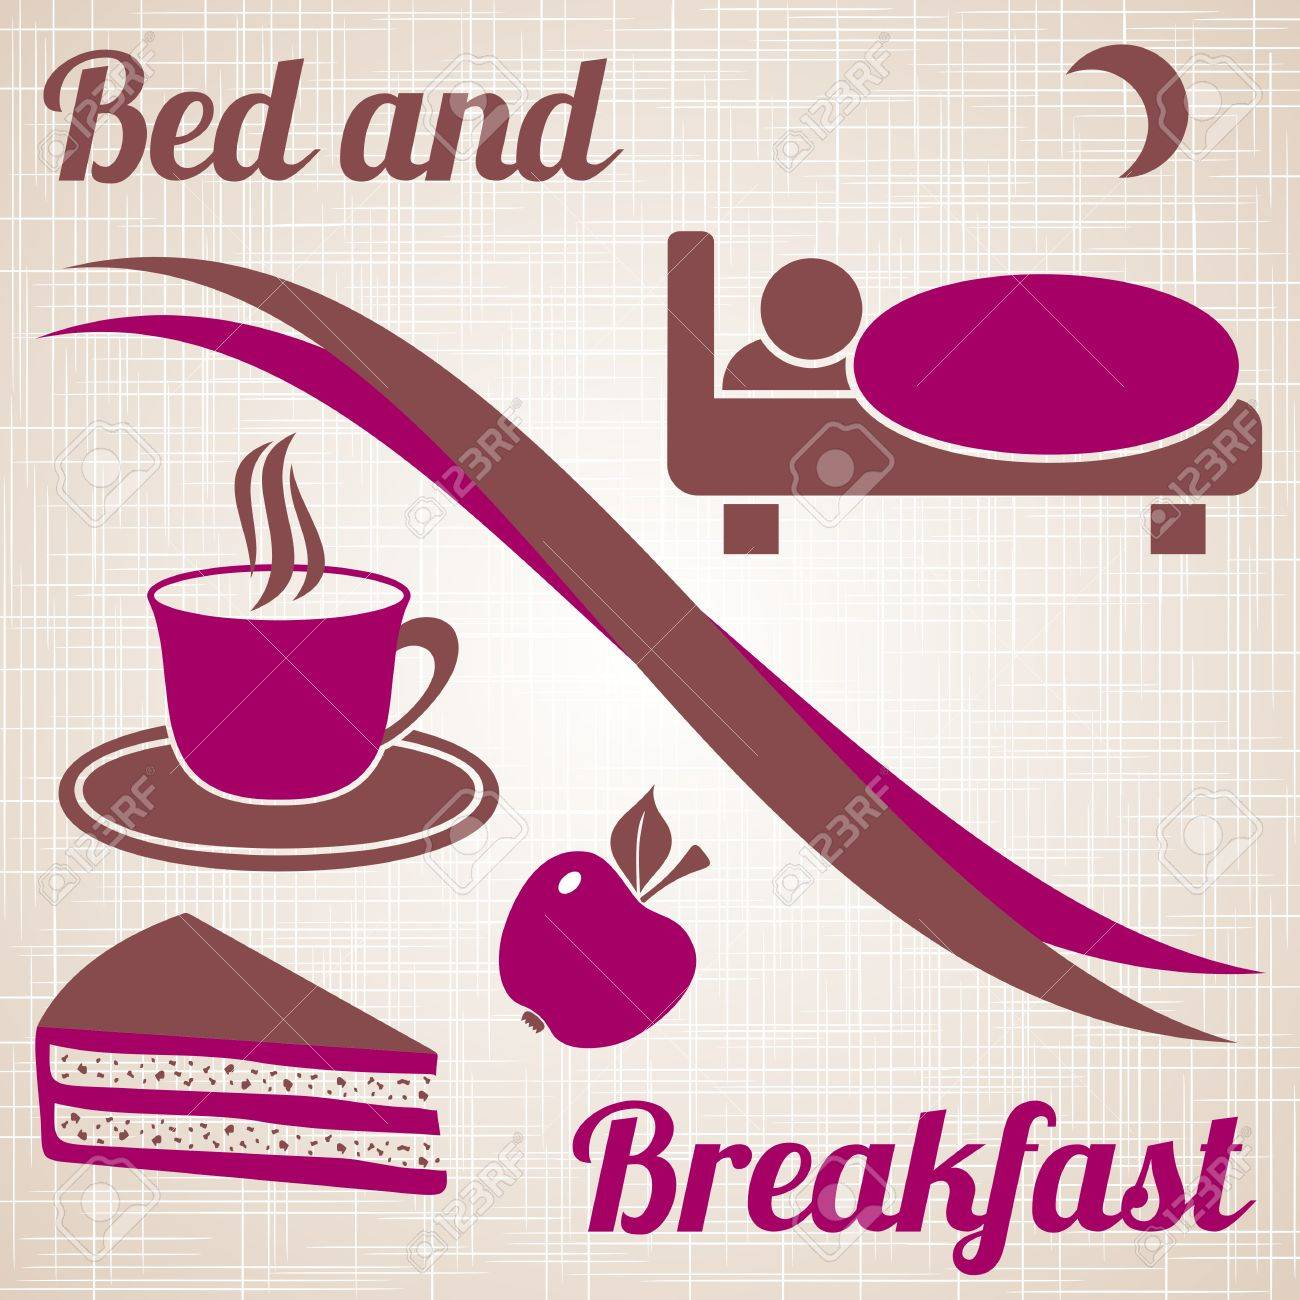 Wine-coloured bed and breakfast menu with text on light brown vintage background Stock Vector - 22560328